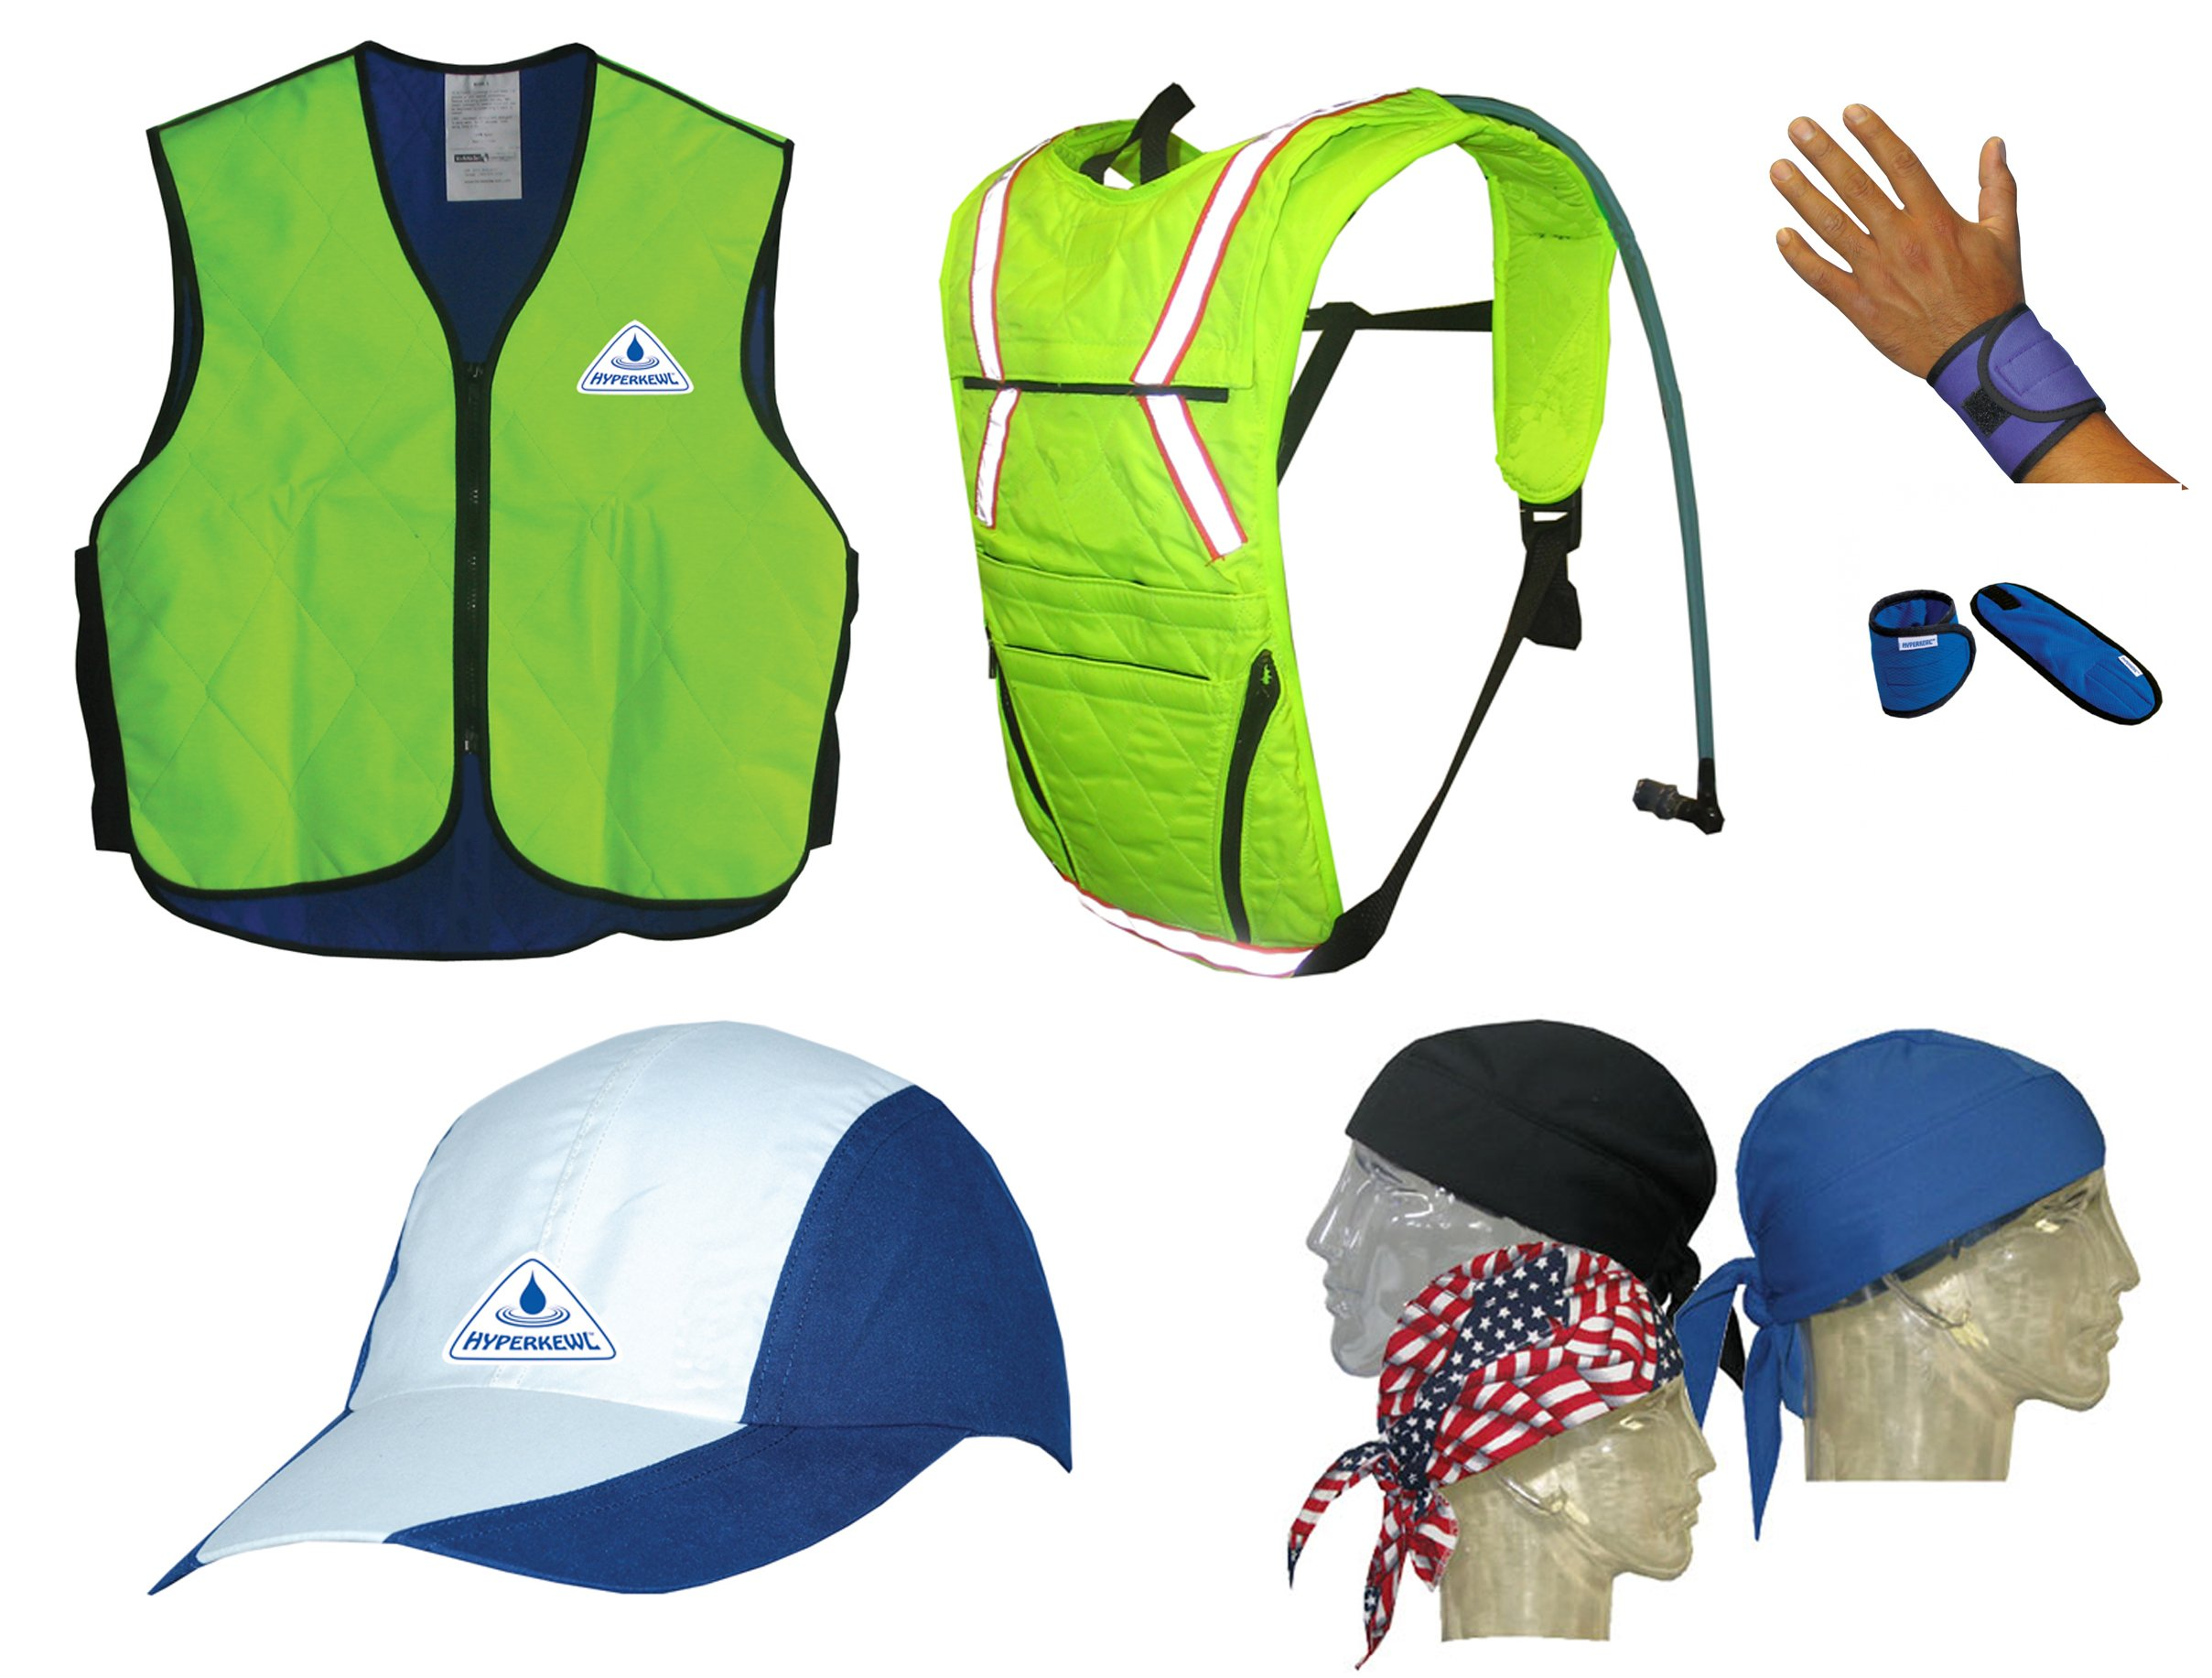 The Ultimate Summer Cooling Kit - GET ALL 7 PIECES - HI-VIZ LIMESMALL